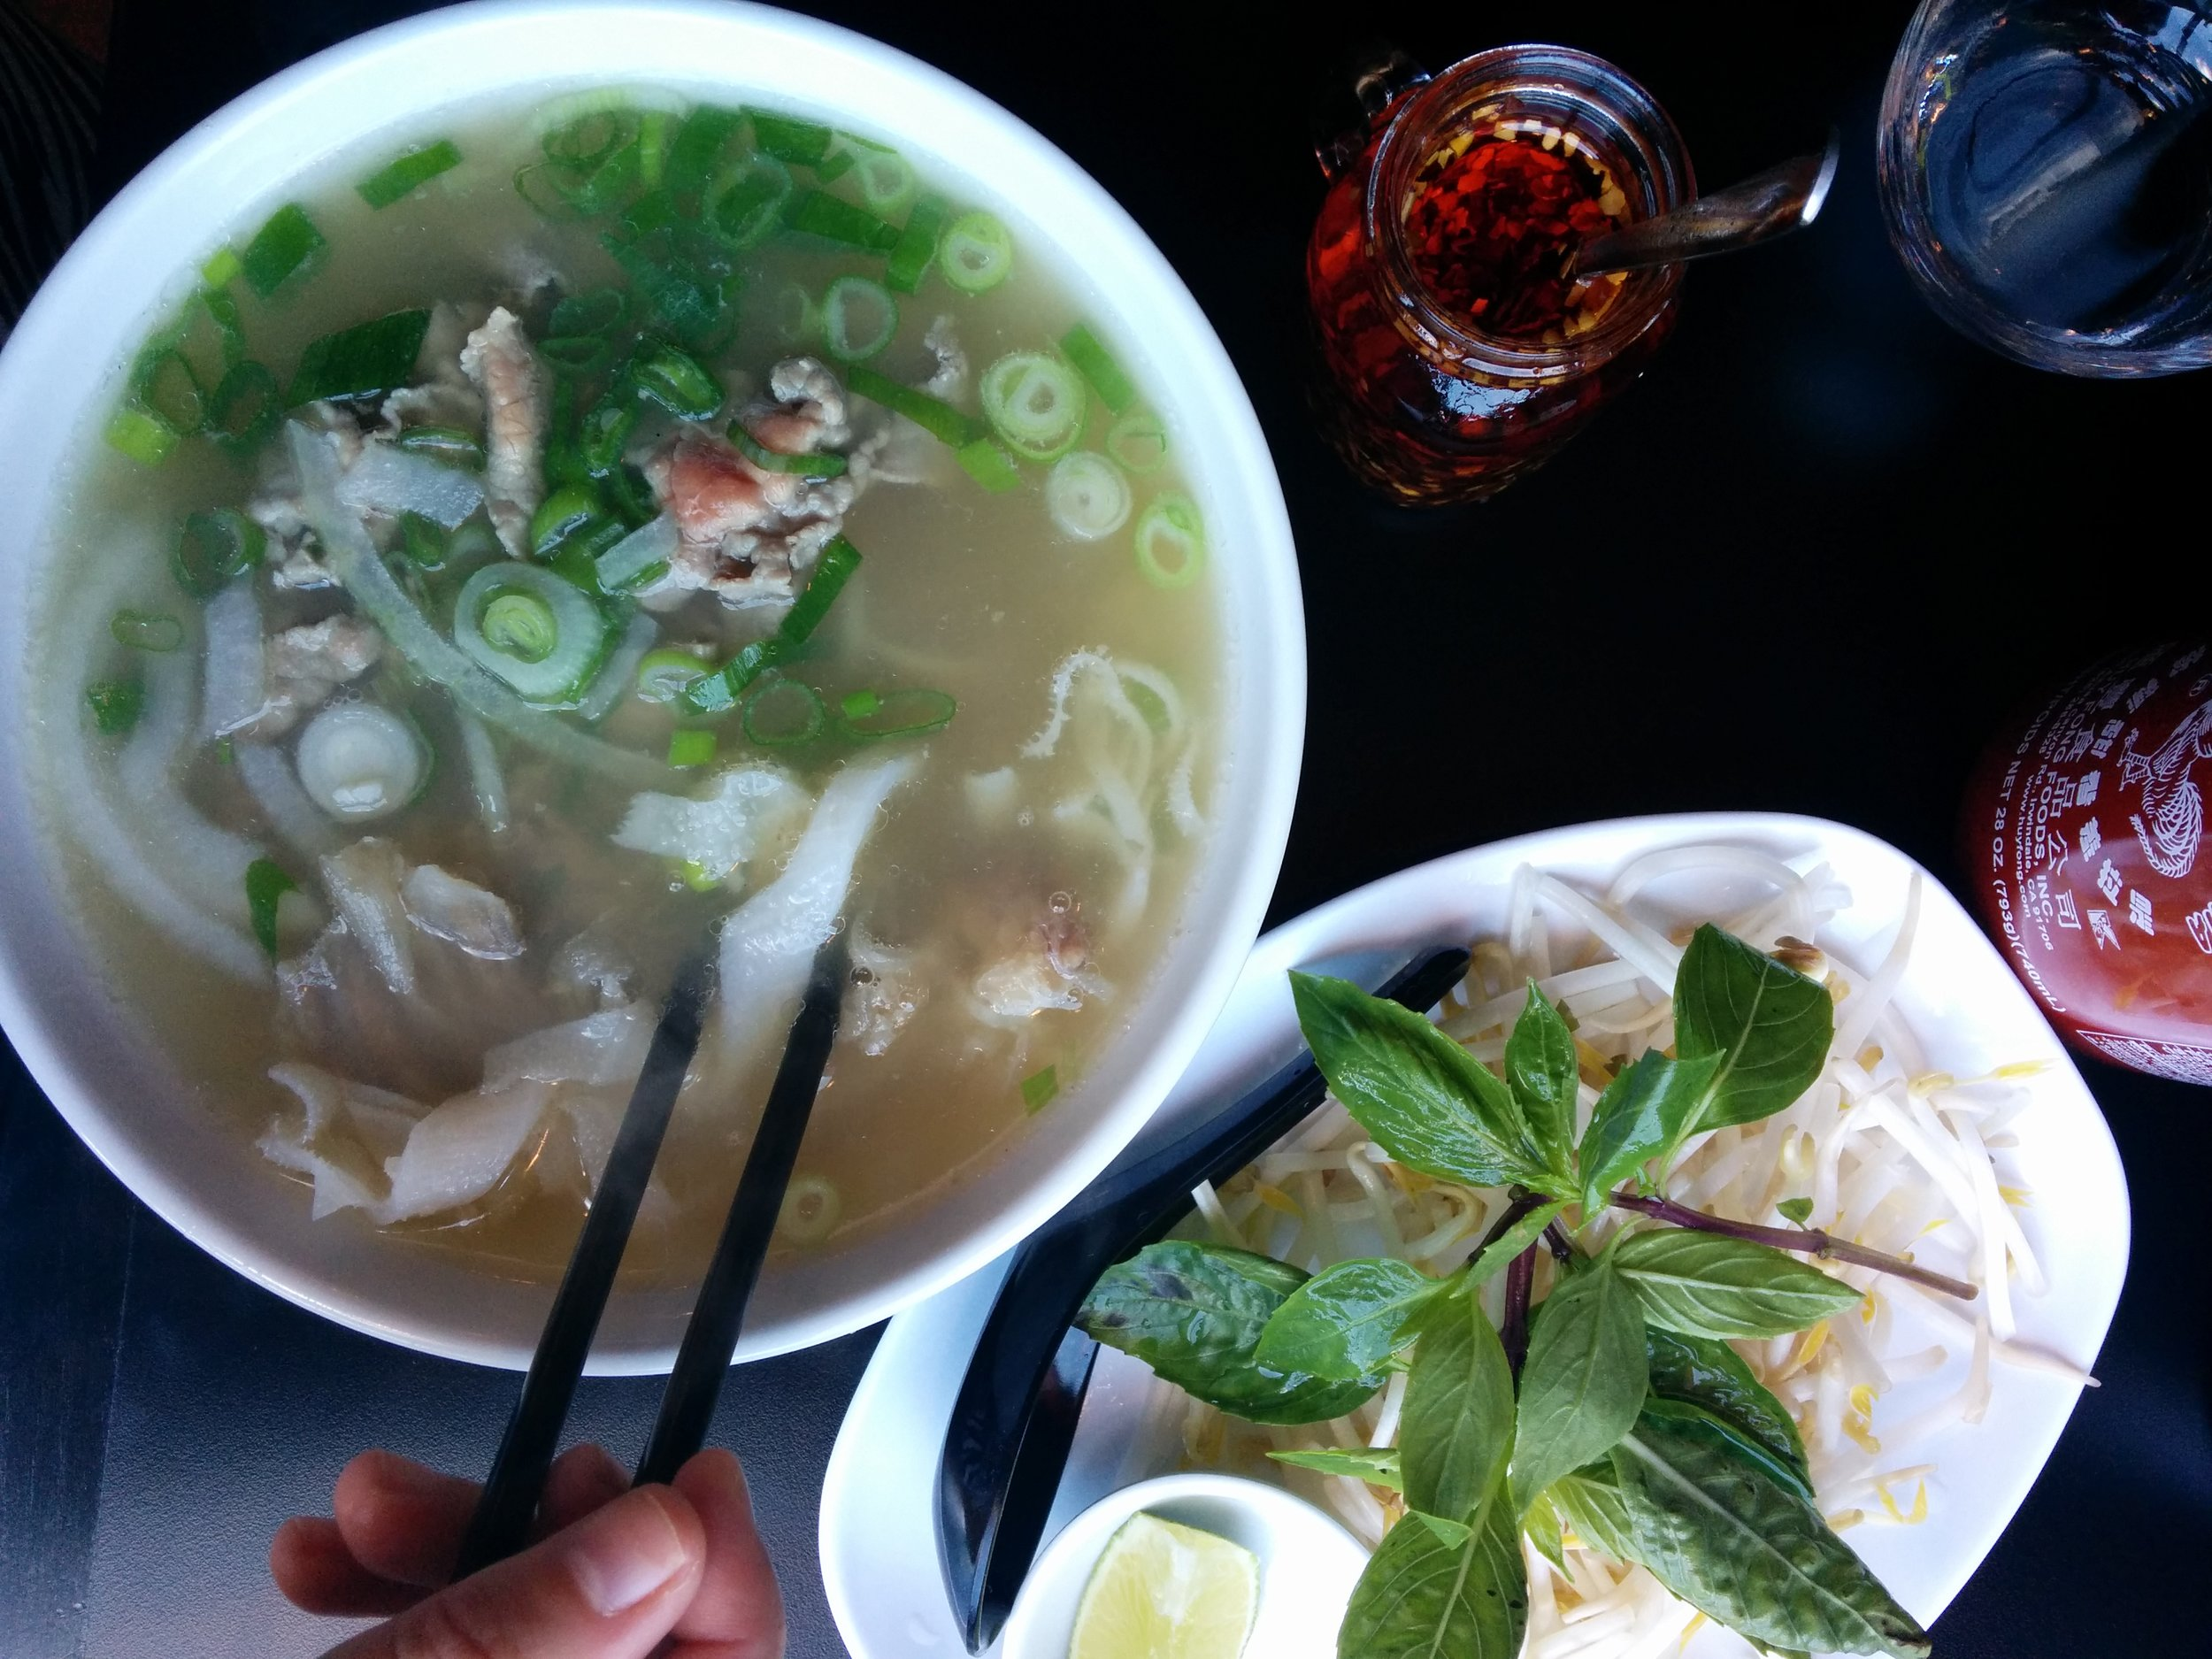 I wonder how phó will taste like without noodles. I'll ask to sub in extra vegetables.